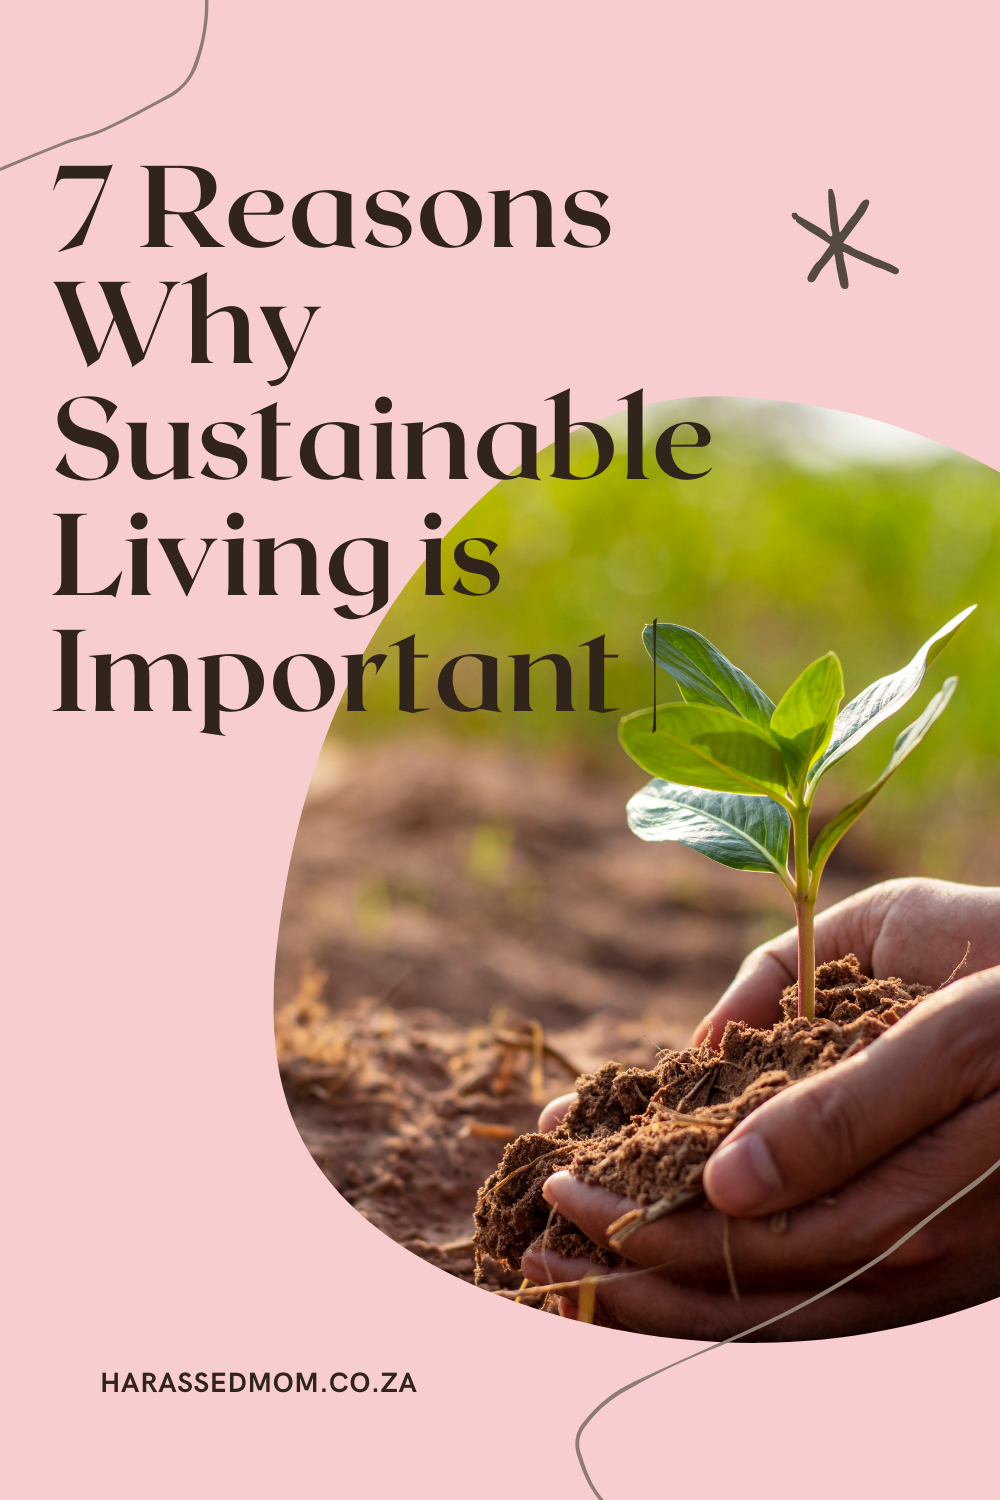 7 Reasons Why Sustainable Living is Important   Sustainable Living with HarassedMom